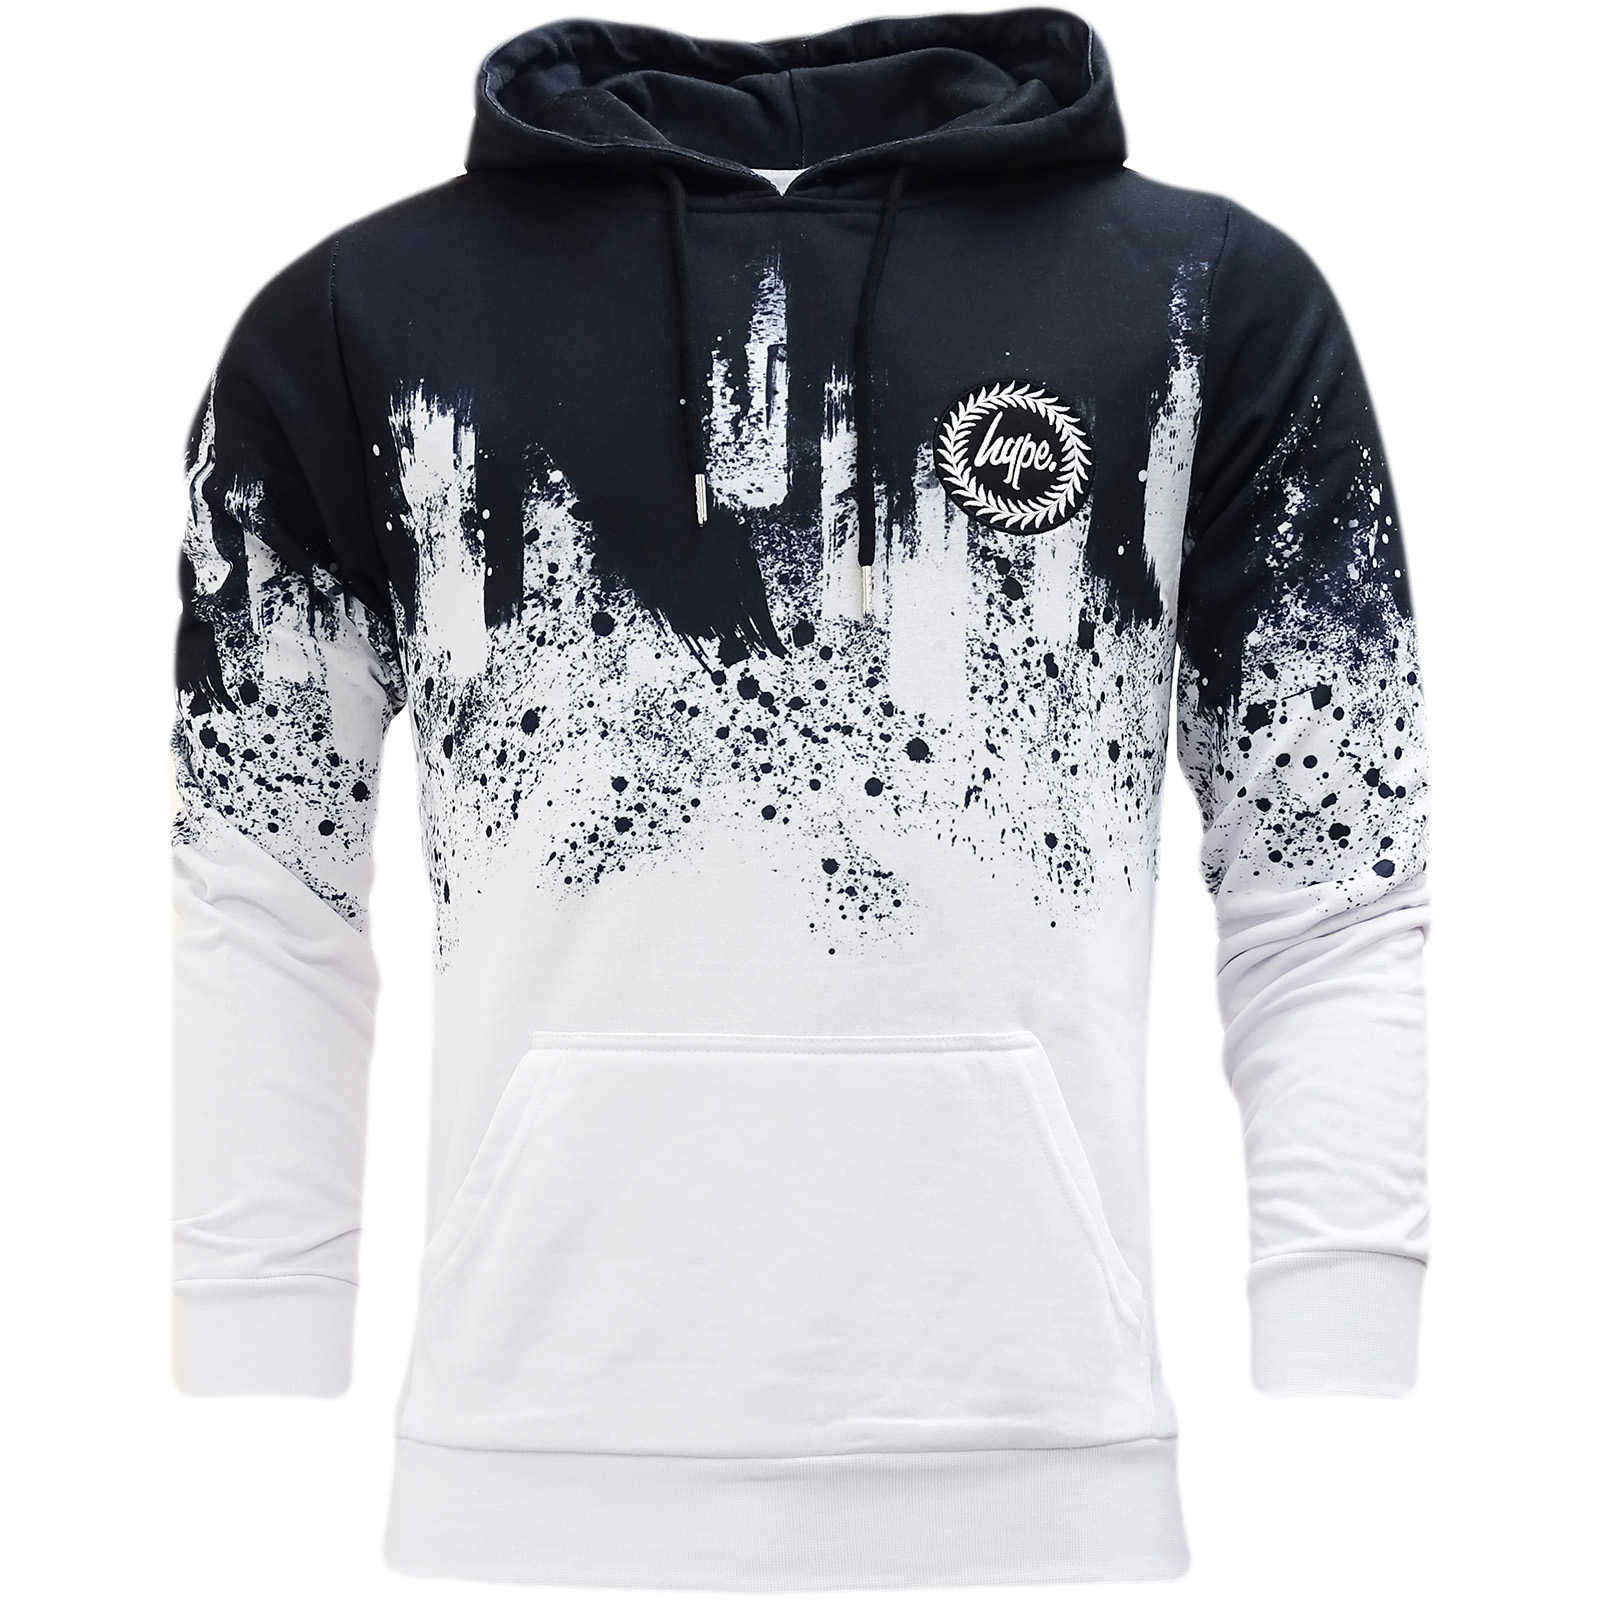 Hype Multi Overhead Hooded Sweatshirt Jumper Paint Smudge -